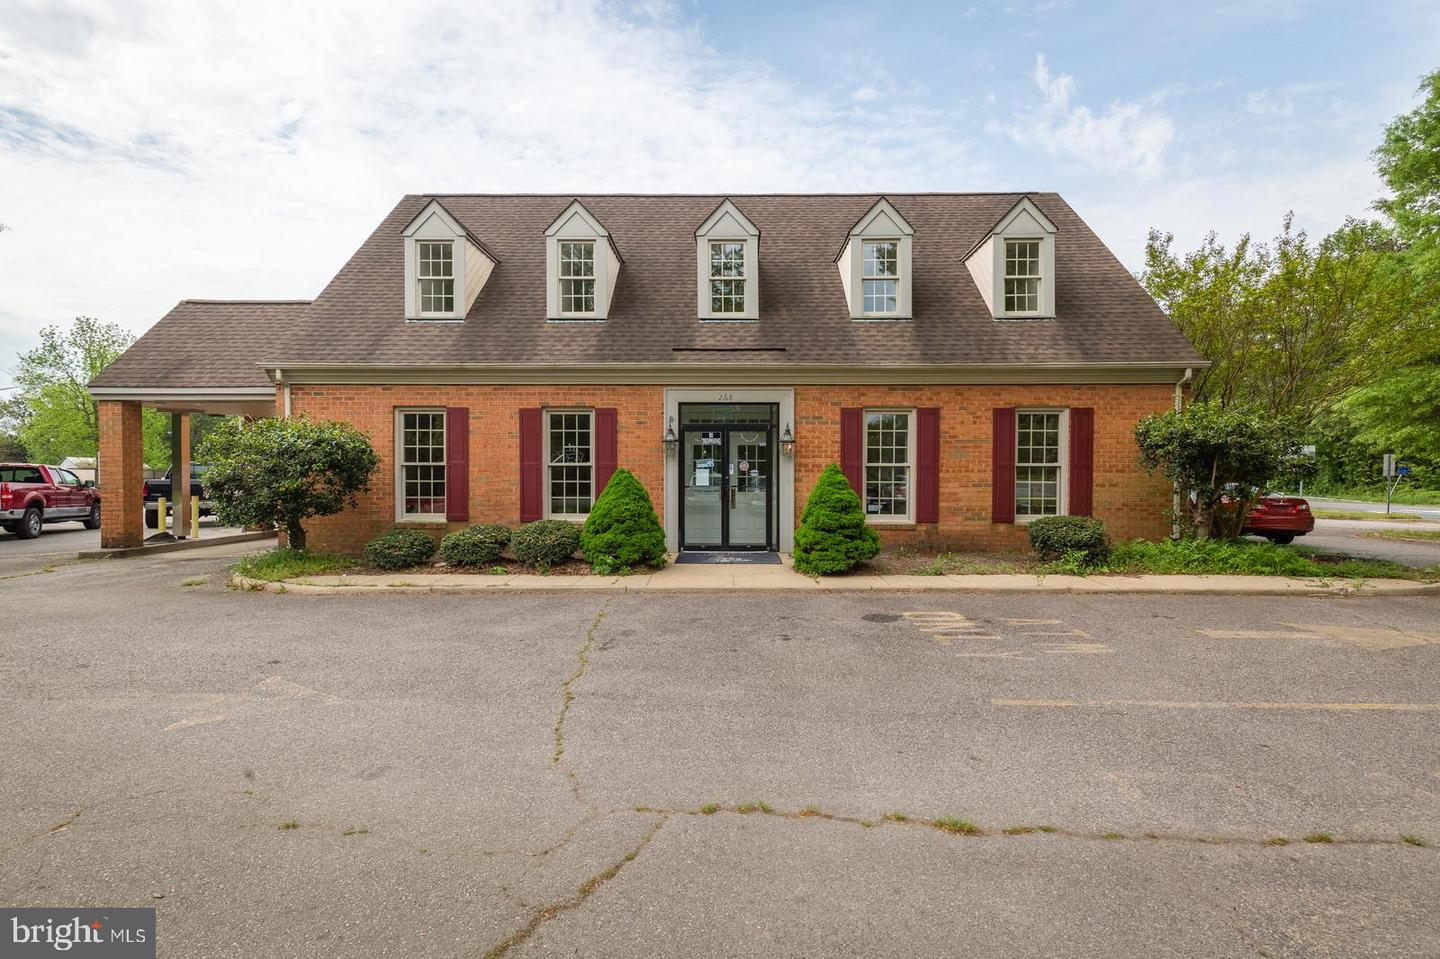 Commercial for Sale at 268 N Main St Bowling Green, Virginia 22427 United States